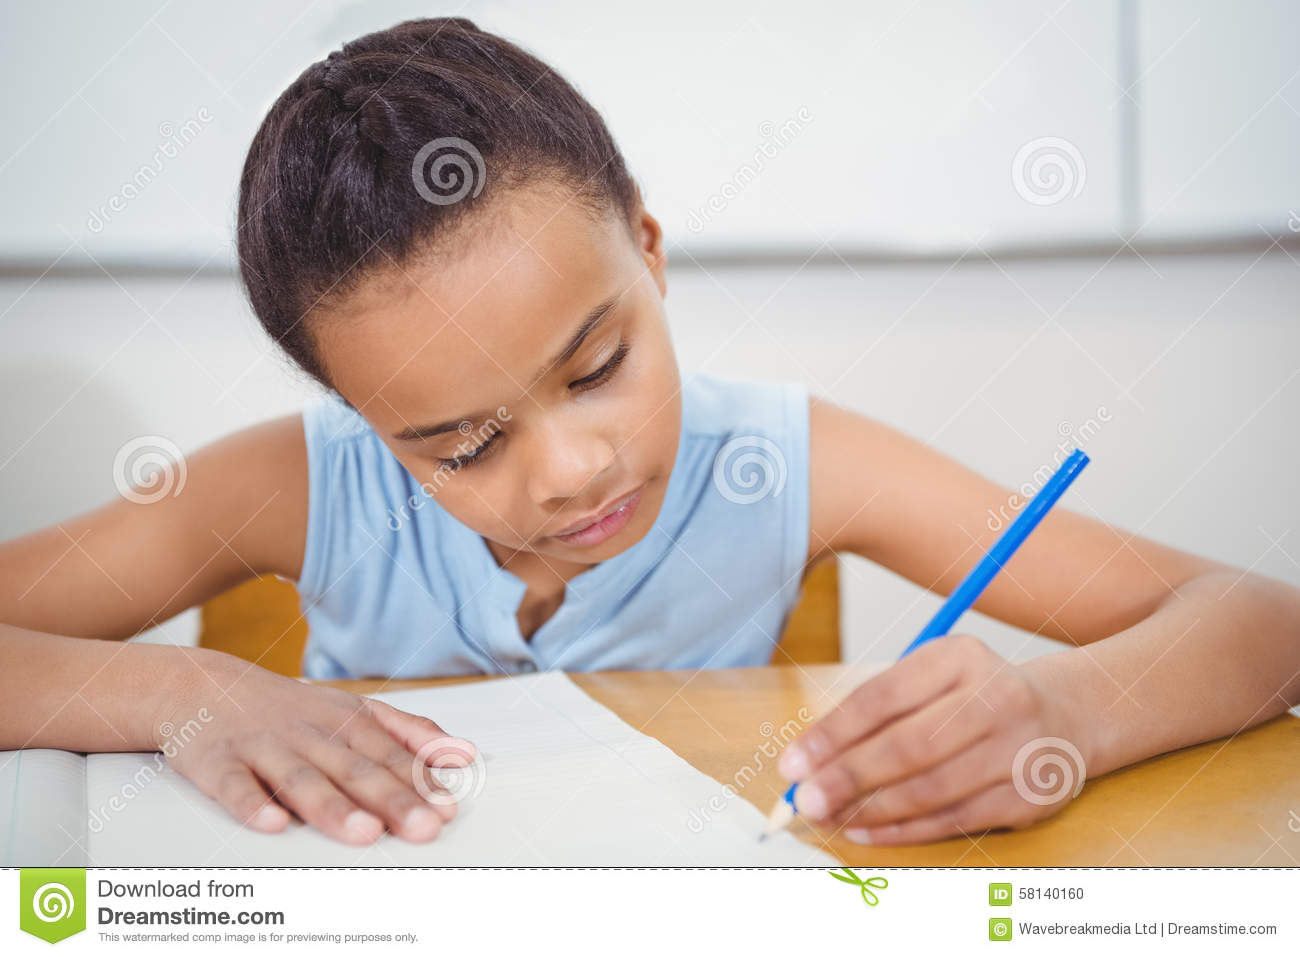 BEST ESSAY WRITING SERVICES WE OFFER